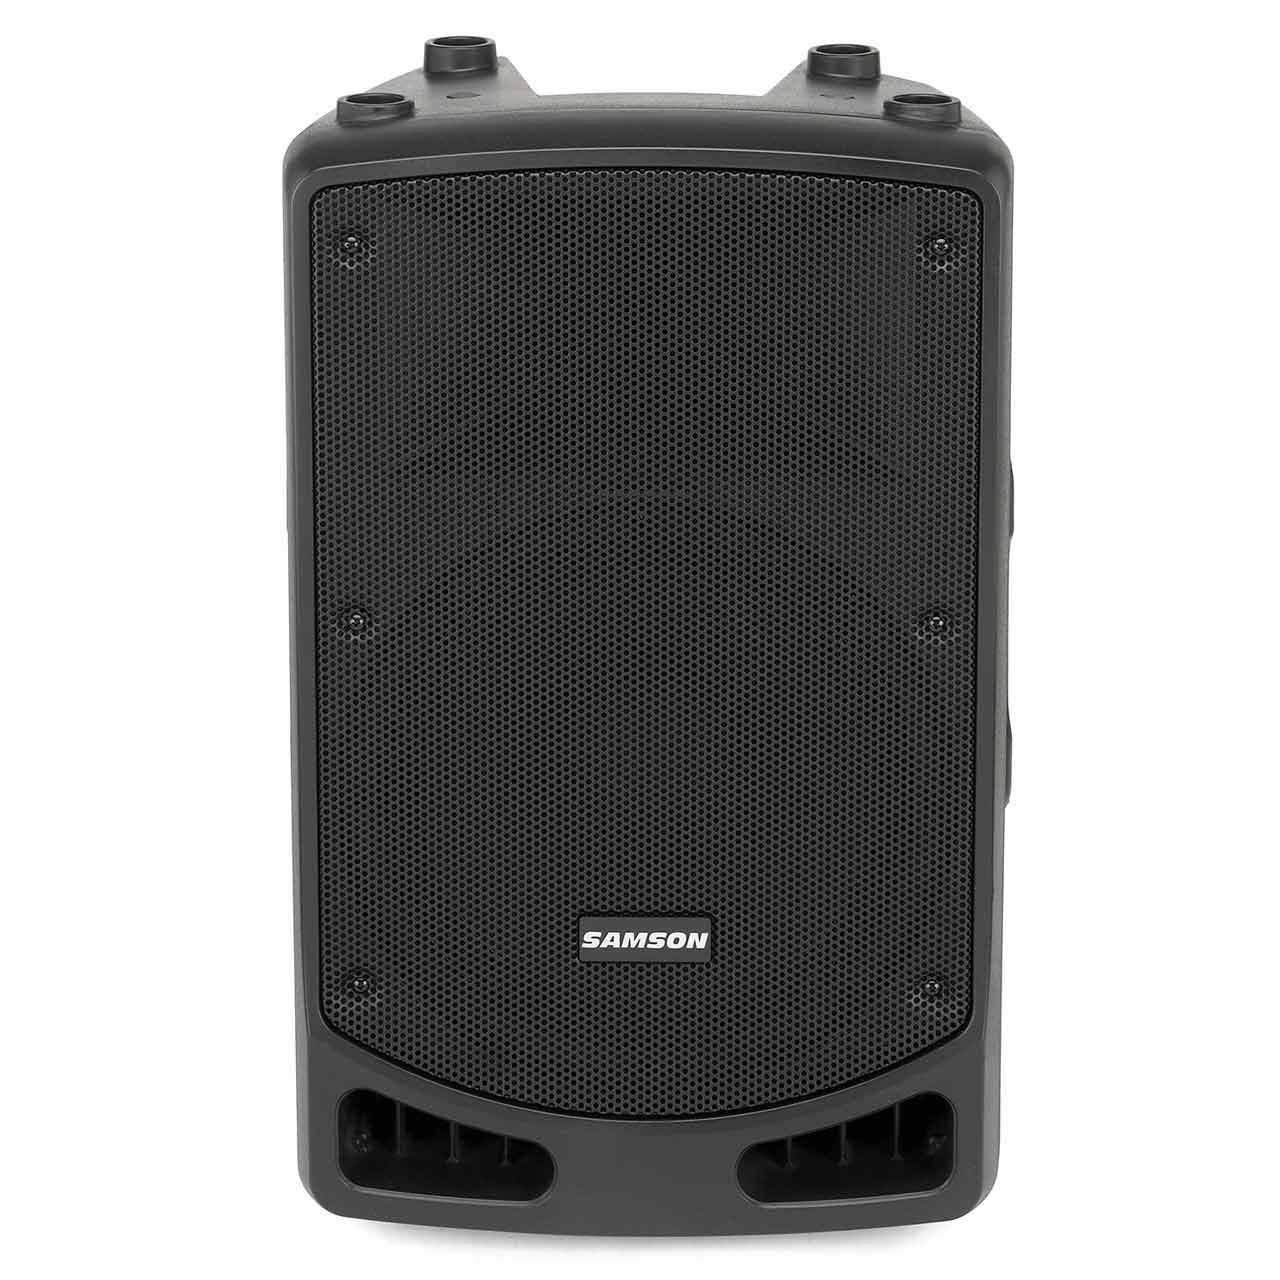 PA Accessories - Samson Expedition XP115A - 500W 2-Way Active PA Speaker (SINGLE)